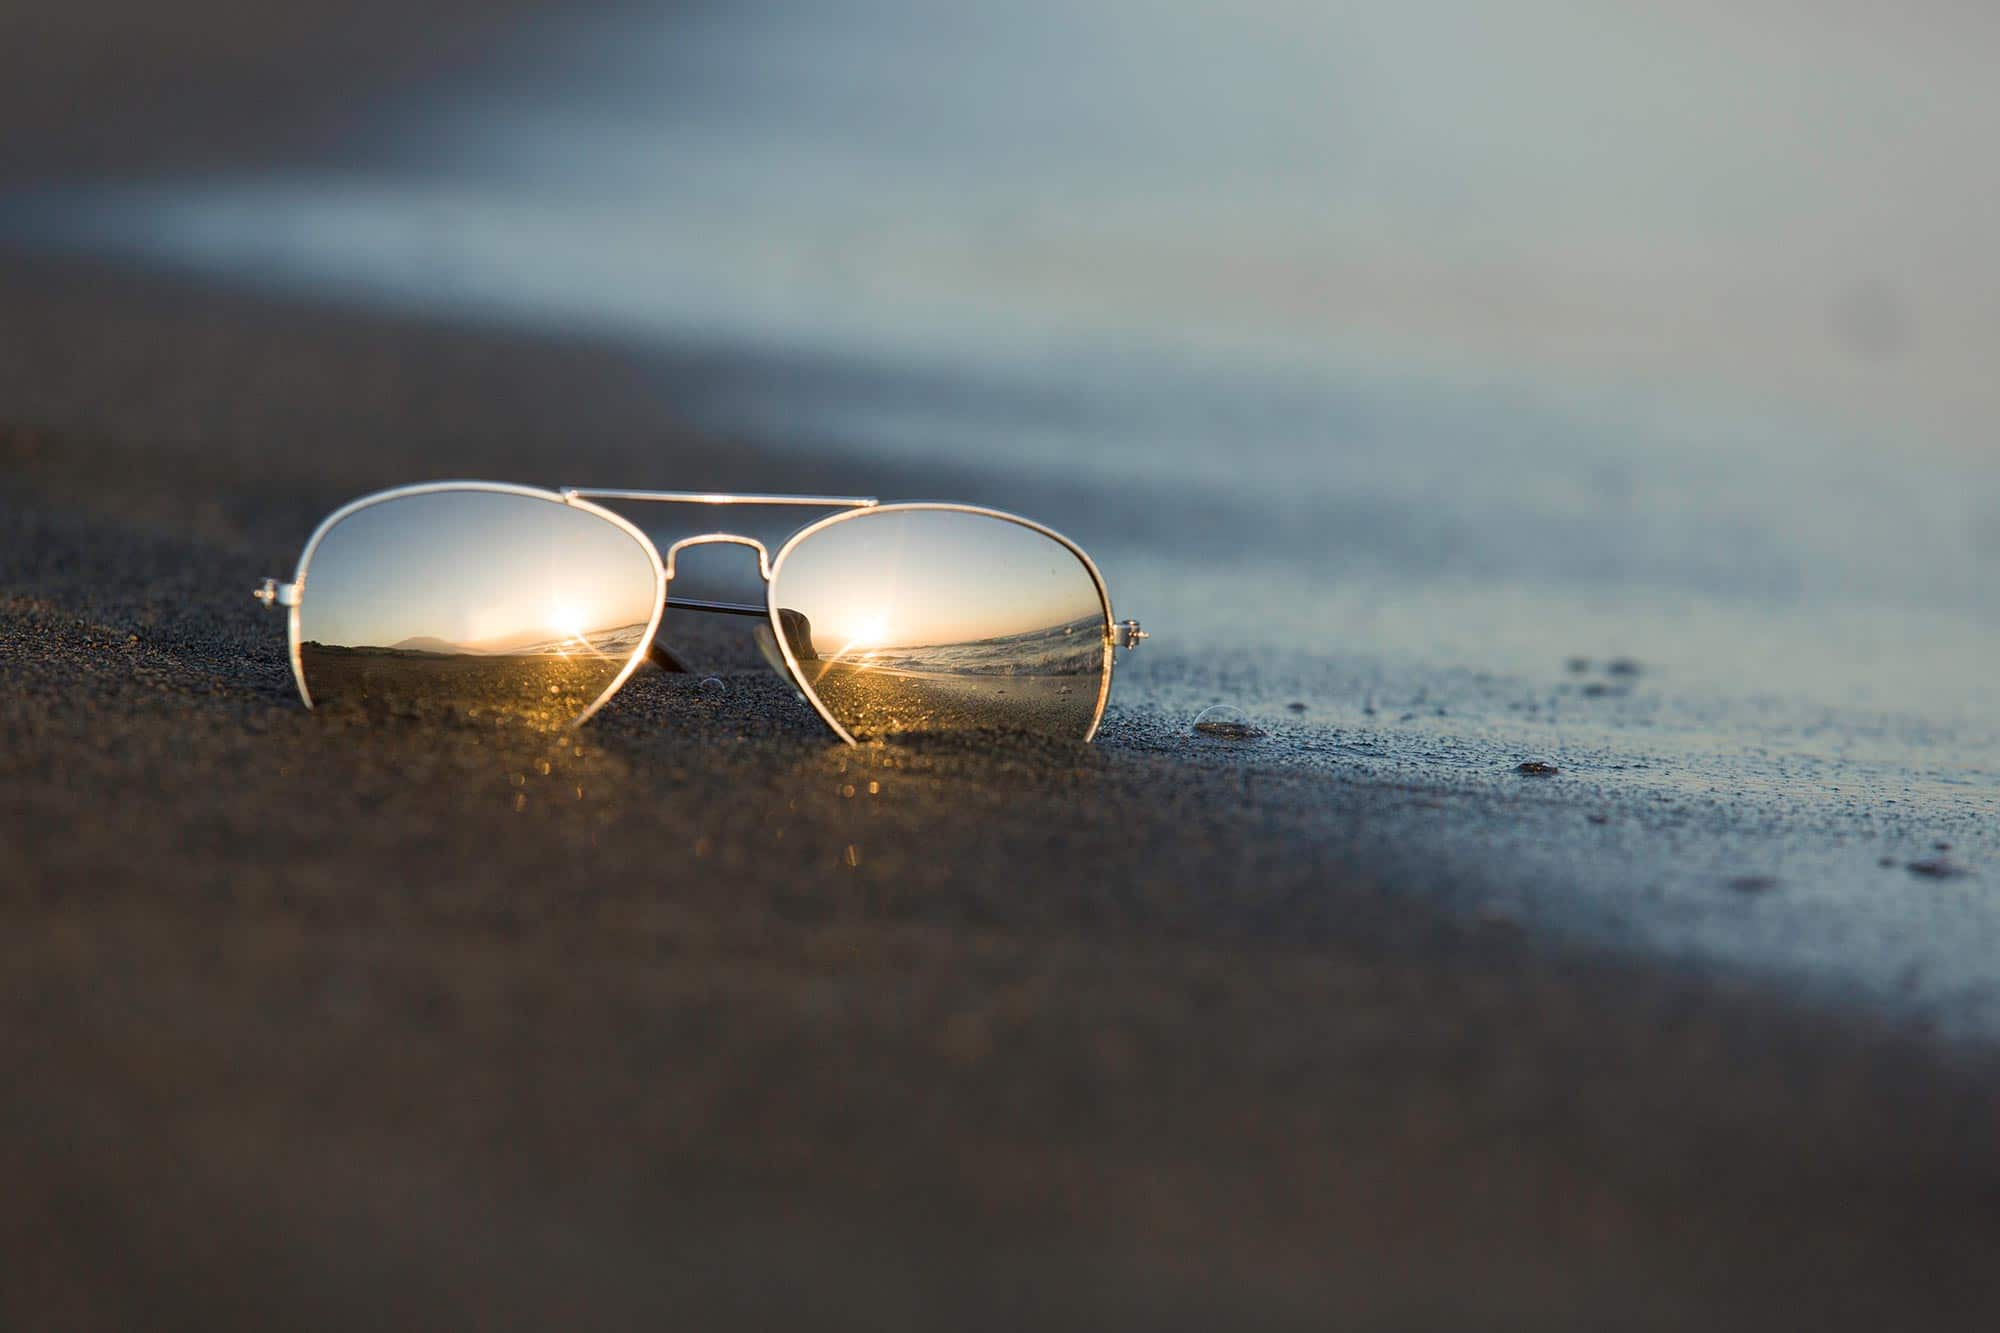 Keep your eyes safe this summer!